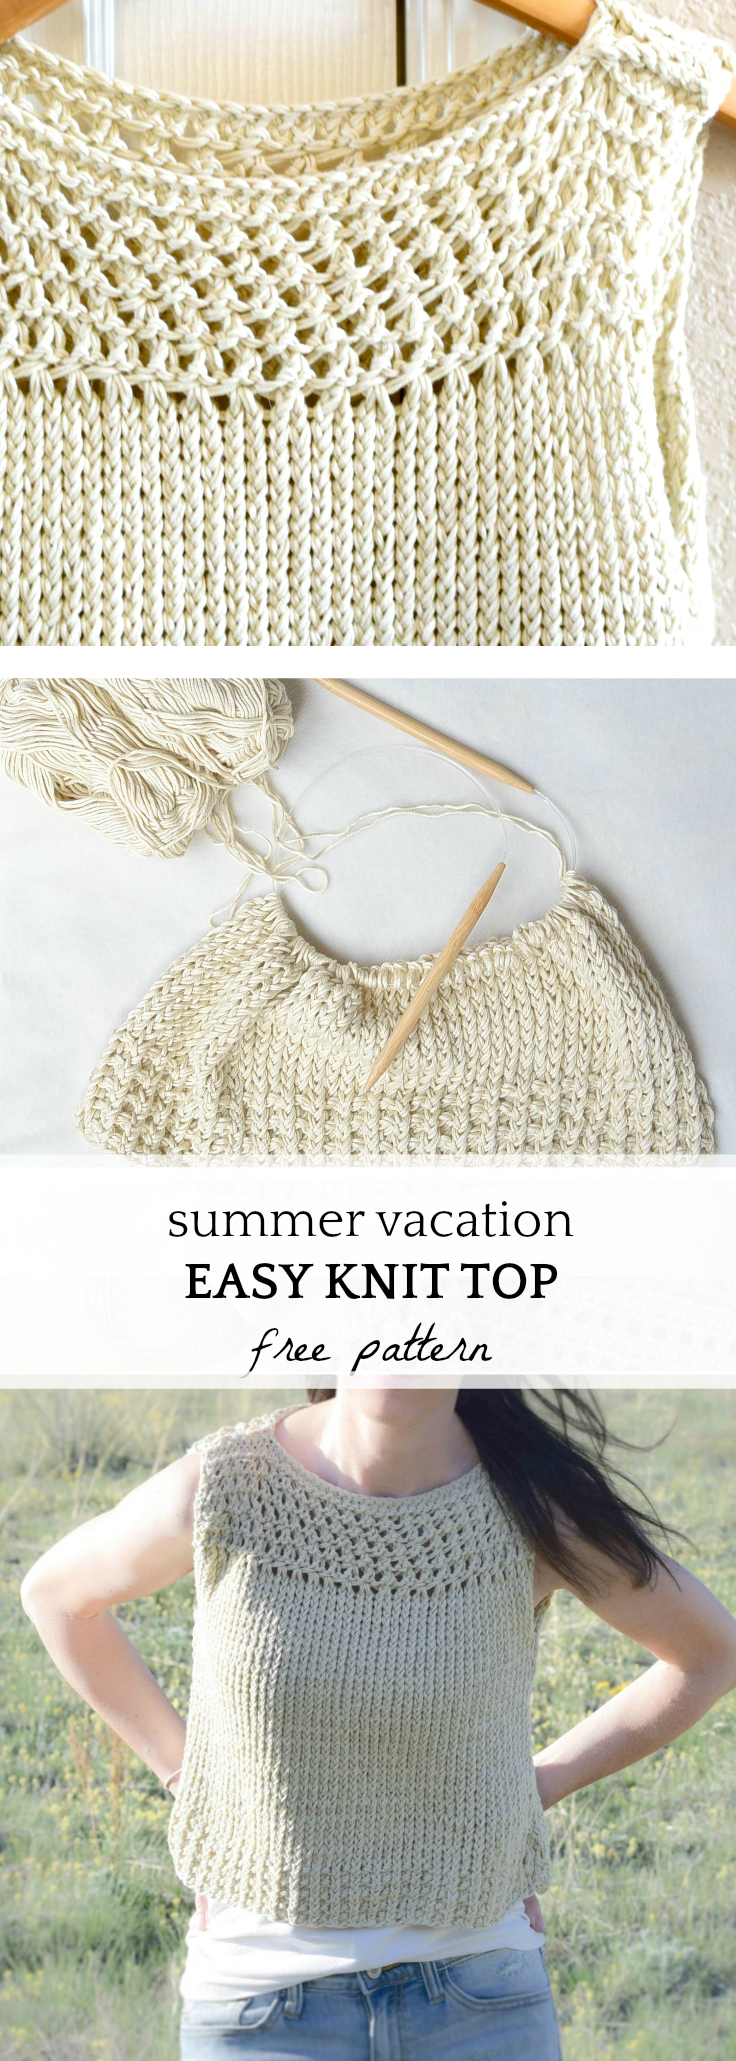 This easy knit top is so beautiful and works up quickly too! You can find the free pattern as well as extra pictures on the blog.  #knittingpattern #summer #style #diy